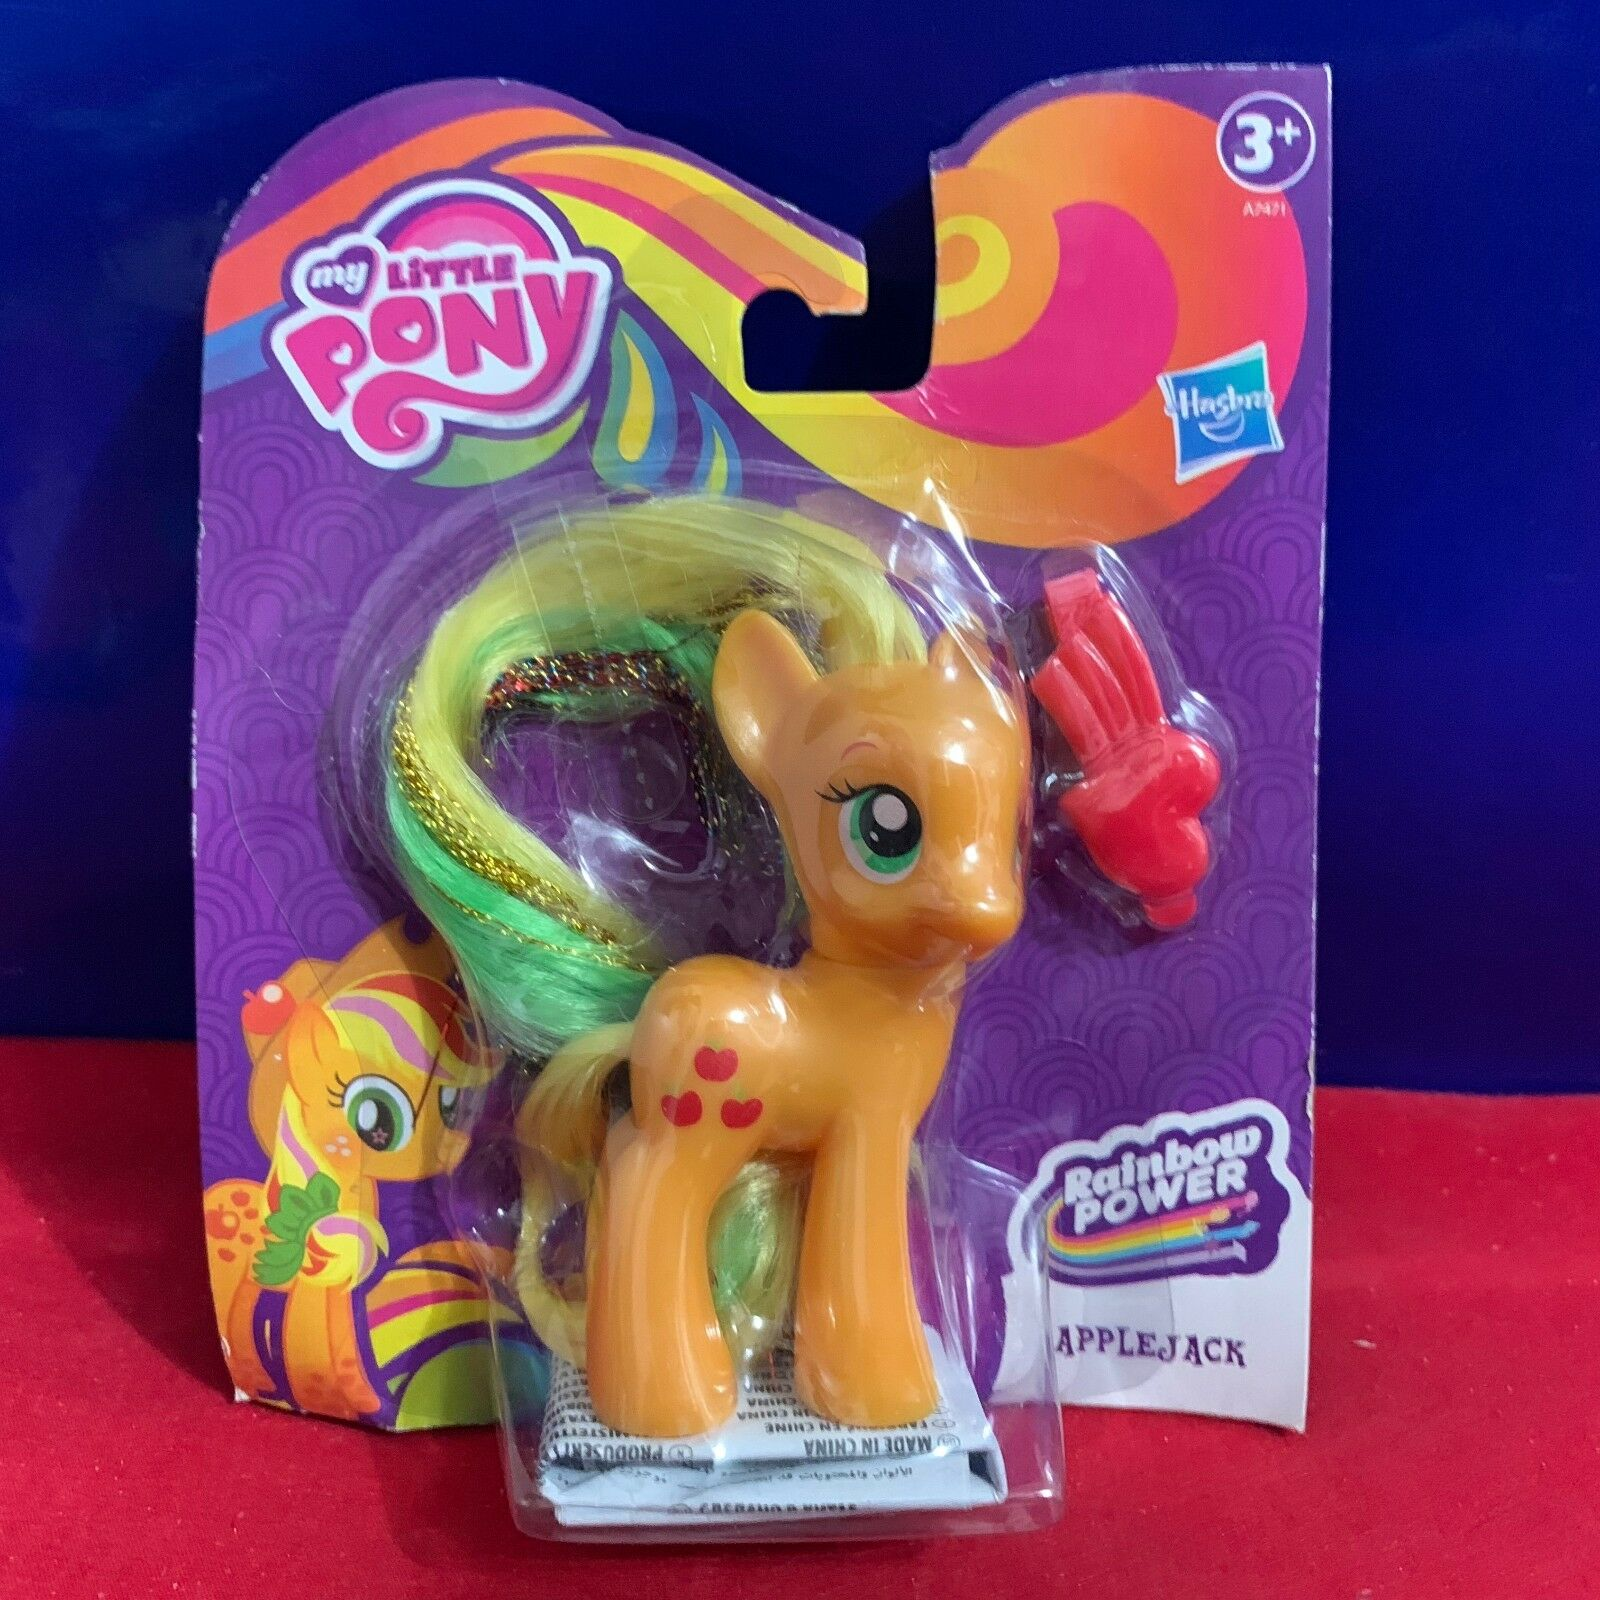 MON PETIT PONEY APPLEJACK Style Poupée-Rainbow Power-figures BT 167 Applejack